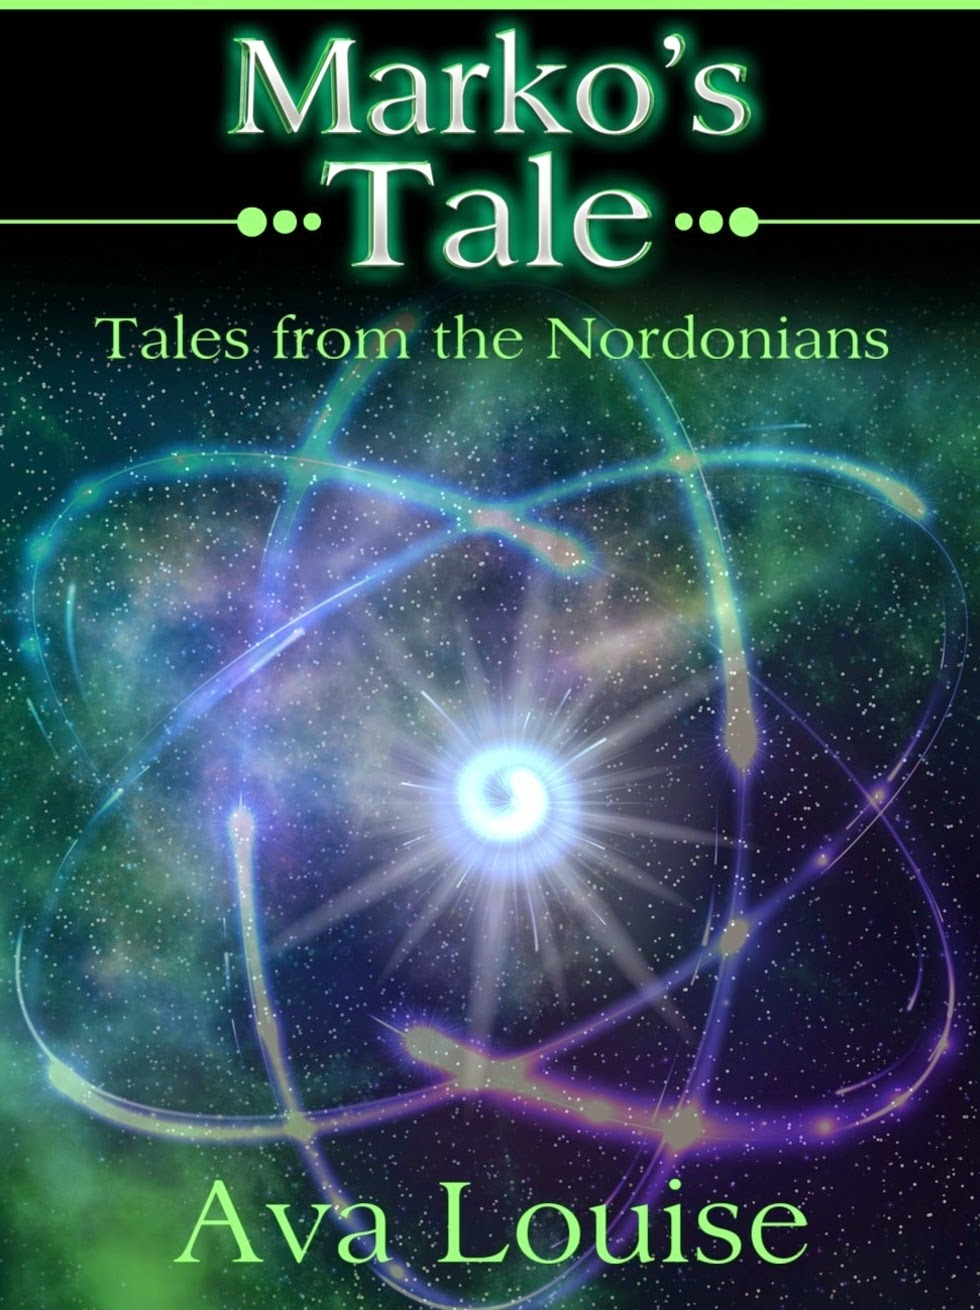 http://www.amazon.com/Markos-Tale-Tales-Nordonians-Book-ebook/dp/B00UR6V2TA/ref=sr_1_1?ie=UTF8&qid=1427492232&sr=8-1&keywords=Marko%27s+tale